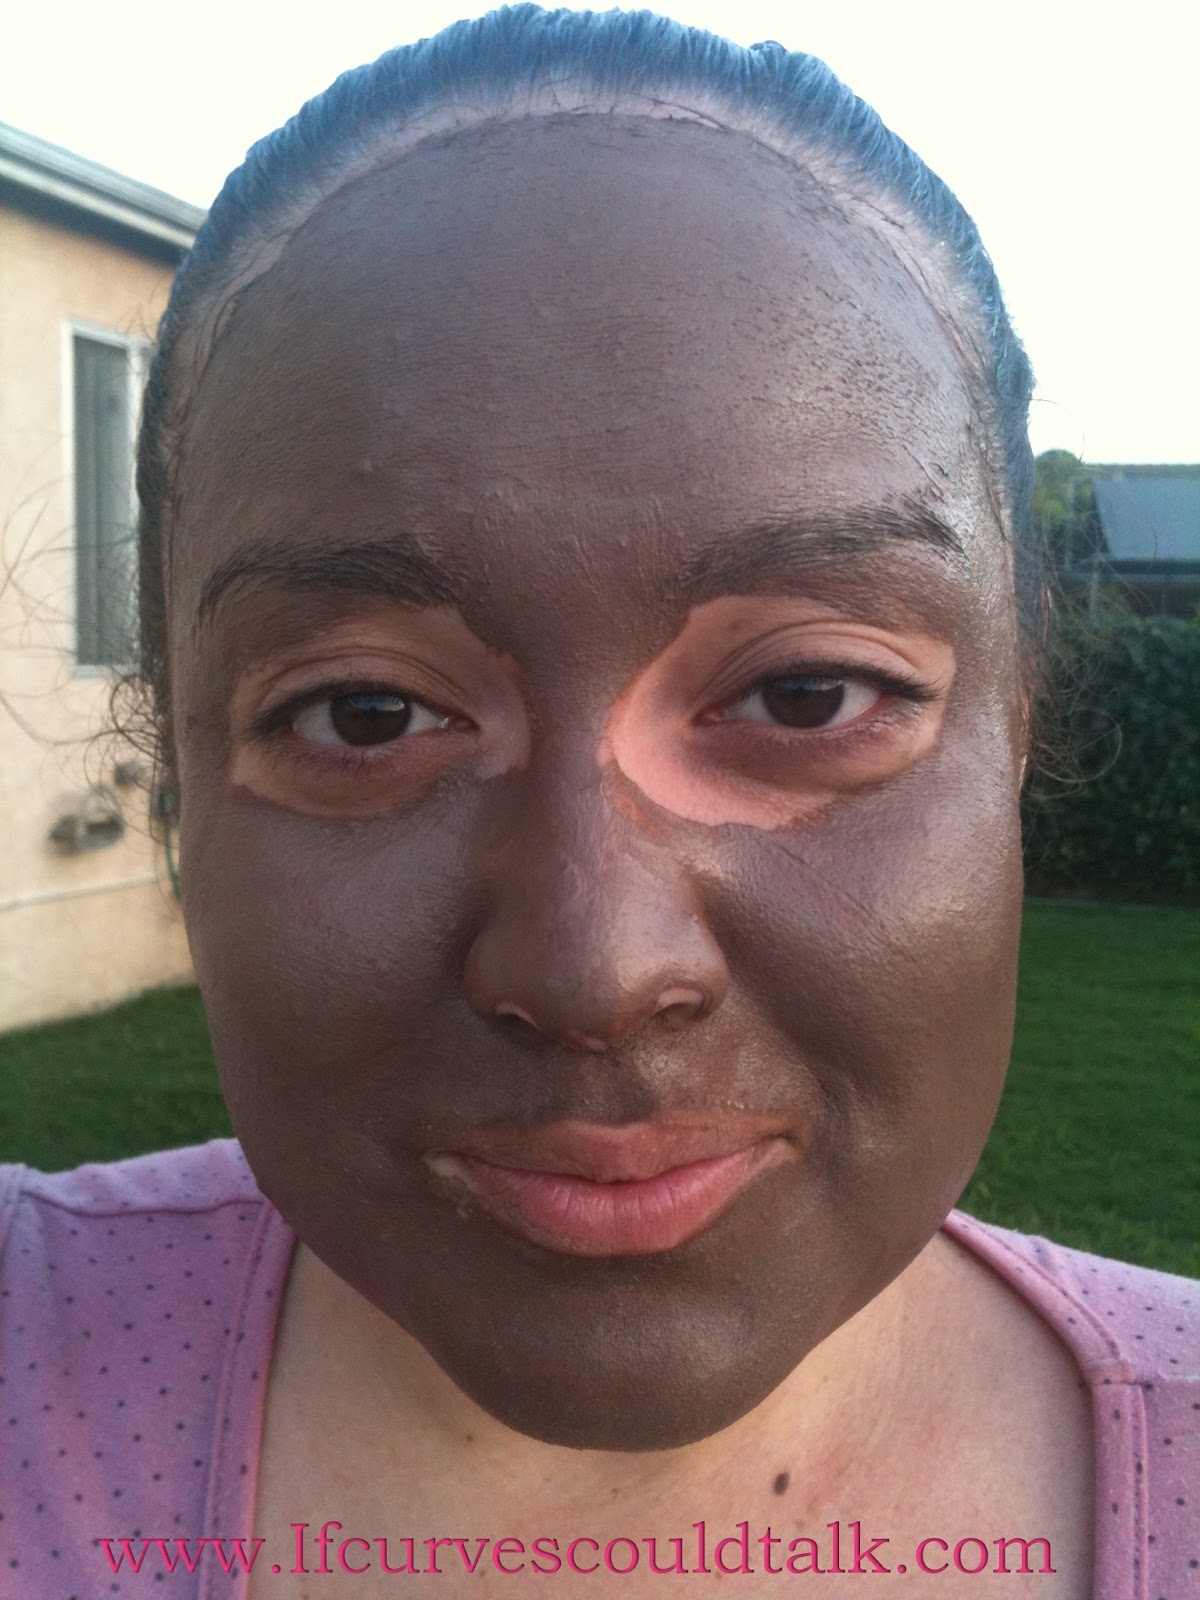 If curves could talk review montagne jeunesse facial mask when you first open the package up you smell chocolate it made me want a brownie i am dead serious when i say this it smelled amazing solutioingenieria Choice Image